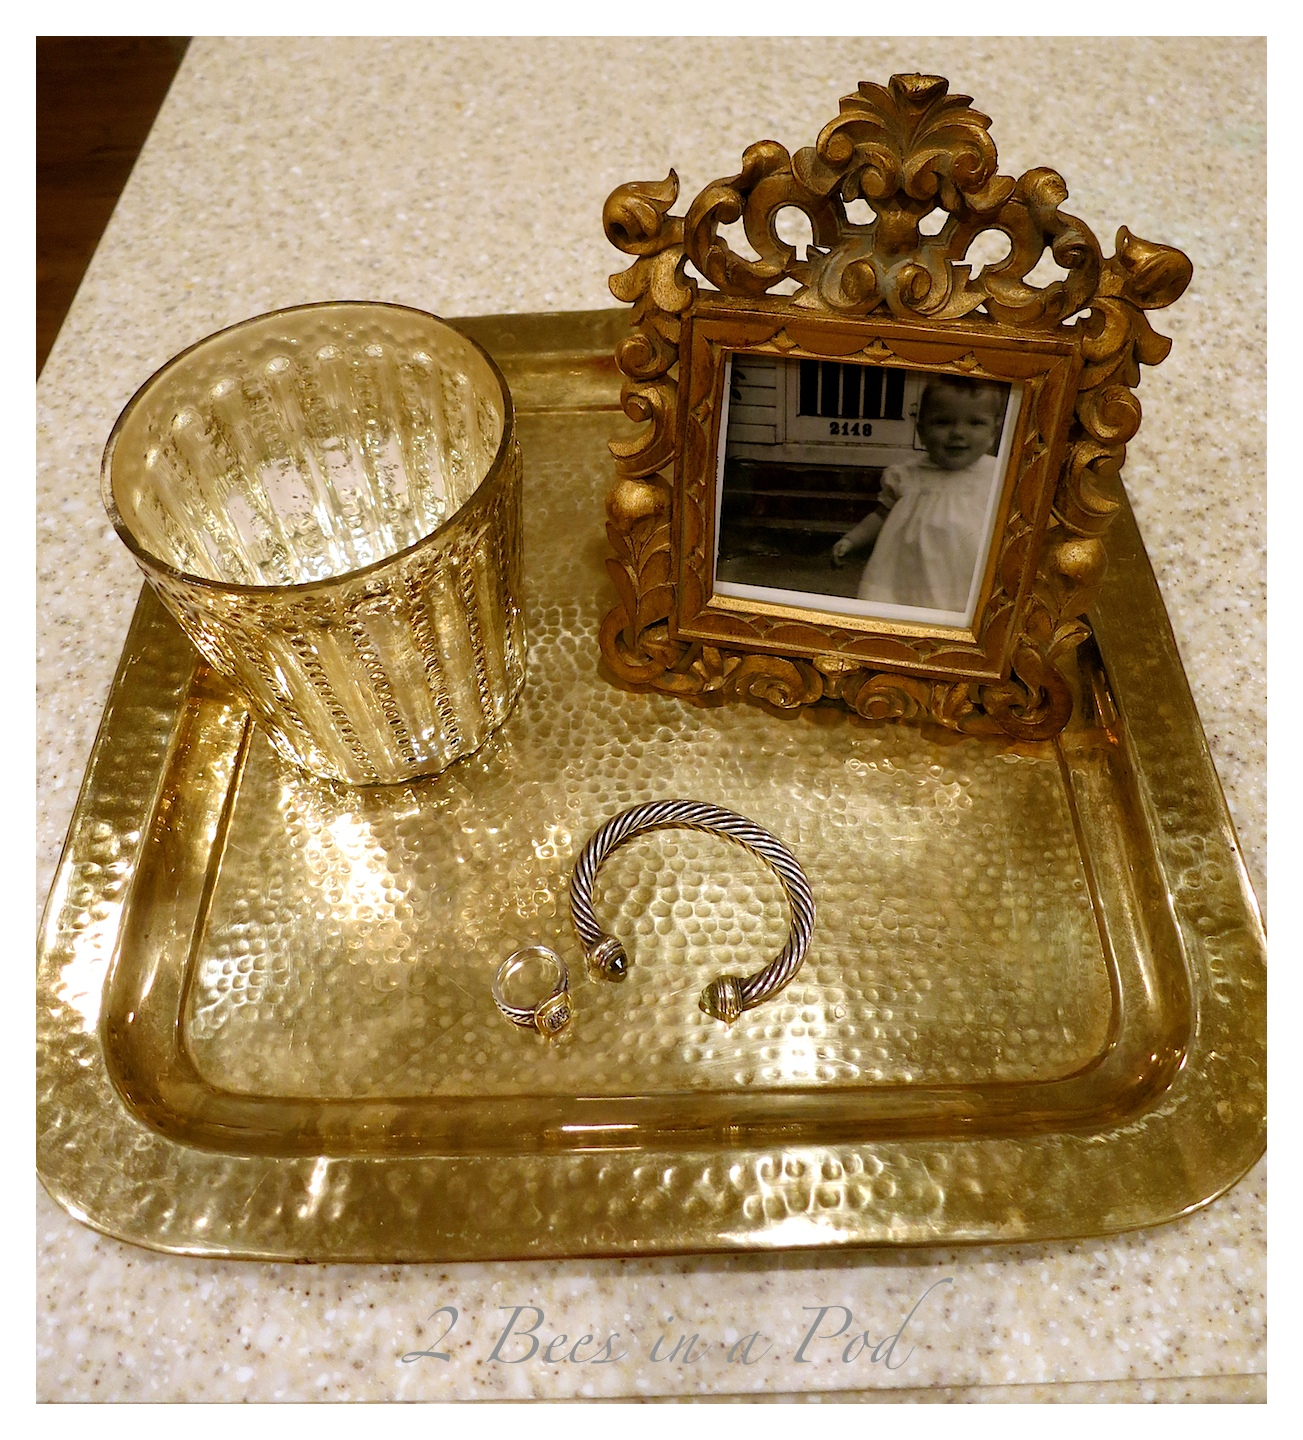 This pretty Hammered brass tray was a 10 cent thrift store find.  It was brought back to life with just a little brass cleaner.